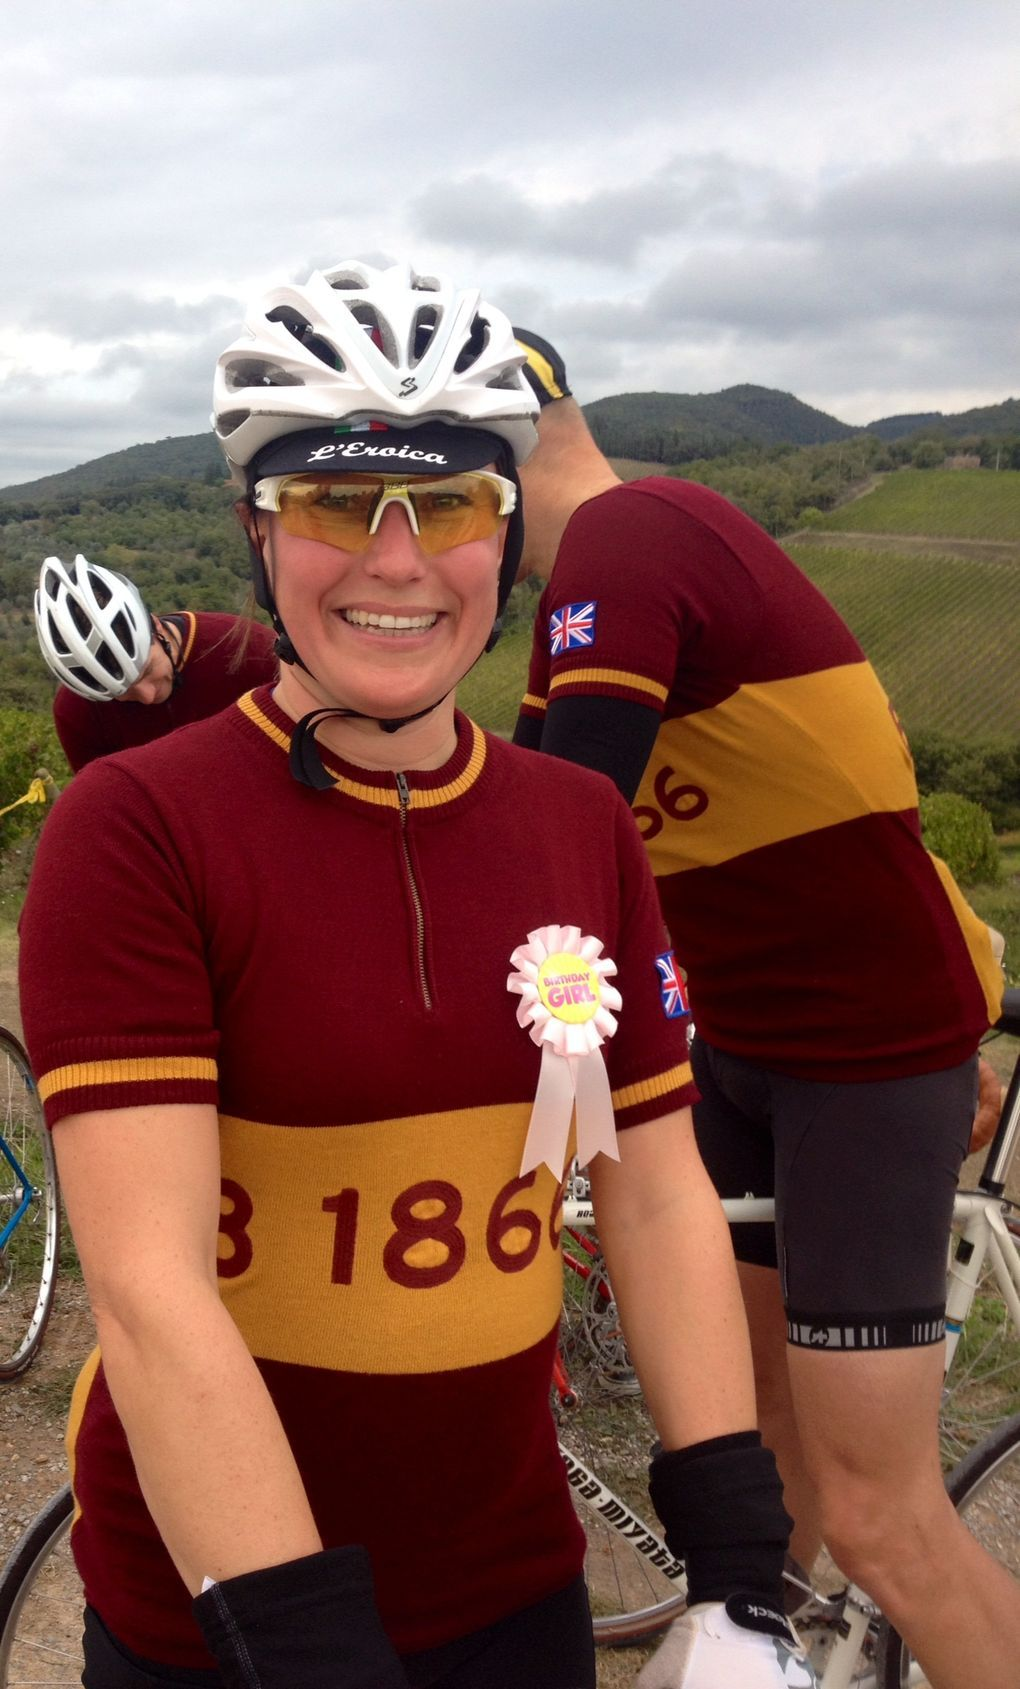 Vintage Cycling Clothing Ideas: Portrait Series from L'Eroica 2015